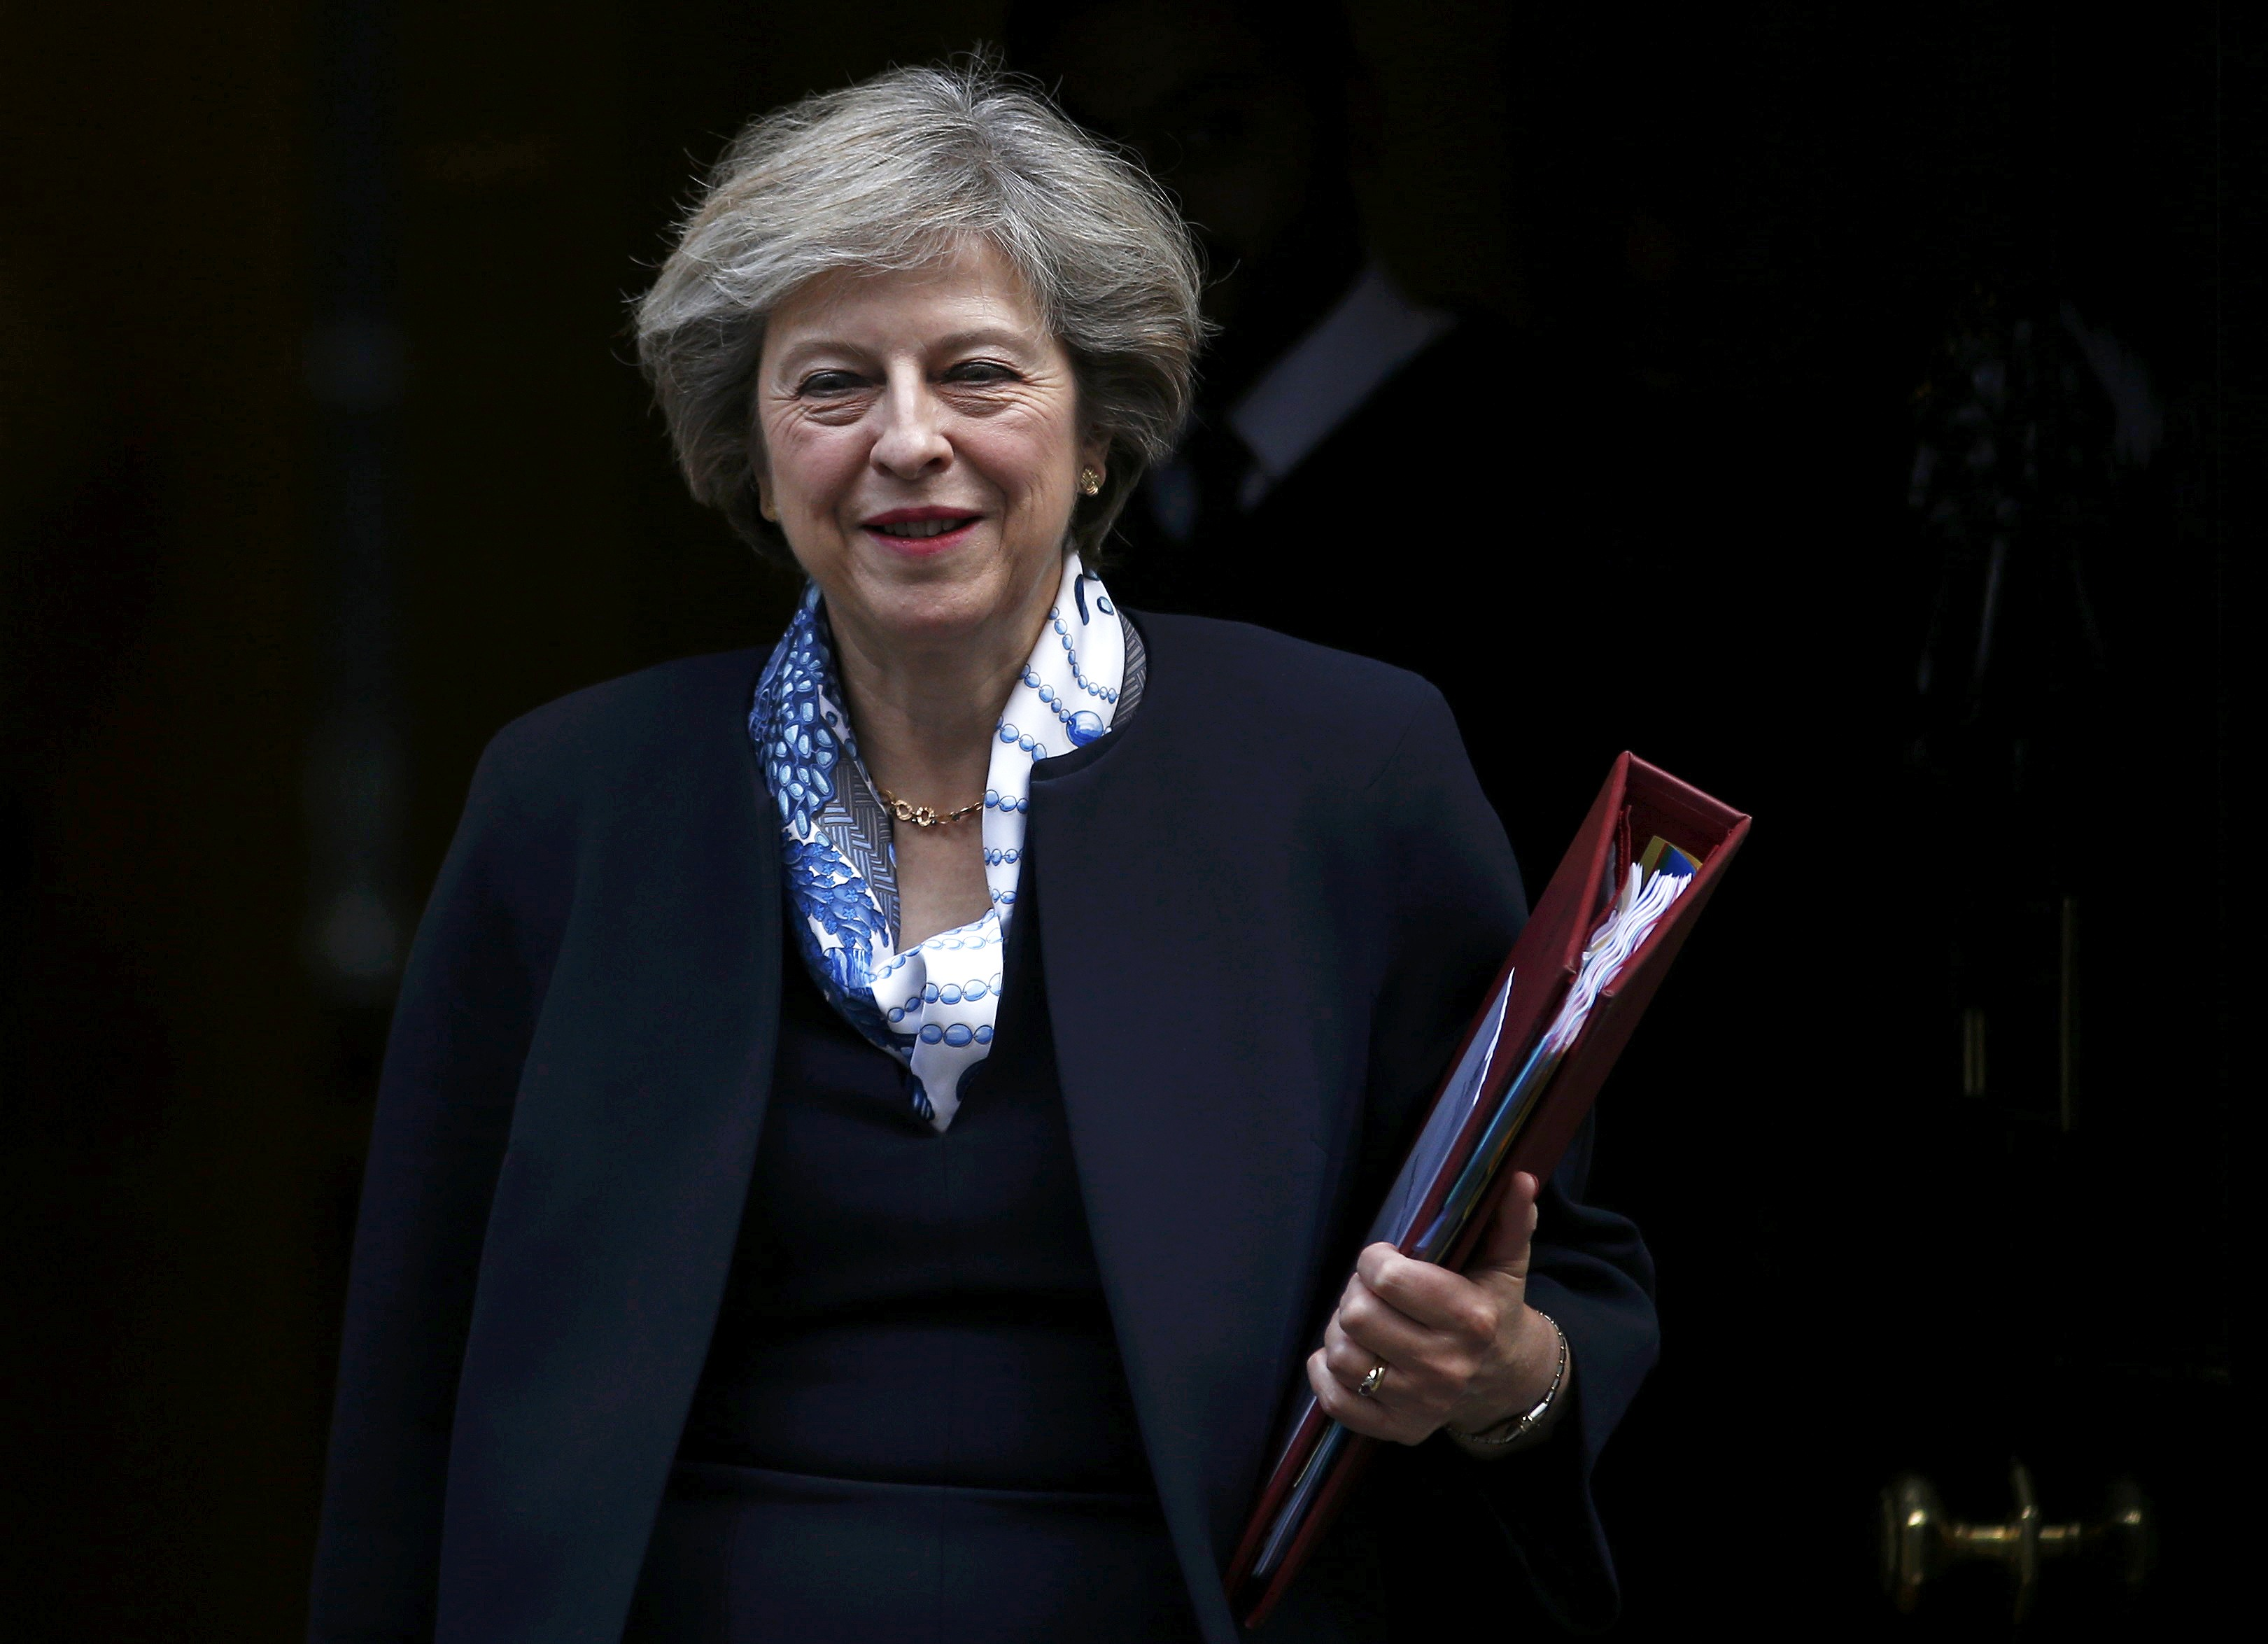 Britain's Prime Minister Theresa May leaves Number 10 Downing Street to attend Prime Minister's Questions at parliament in London, Britain